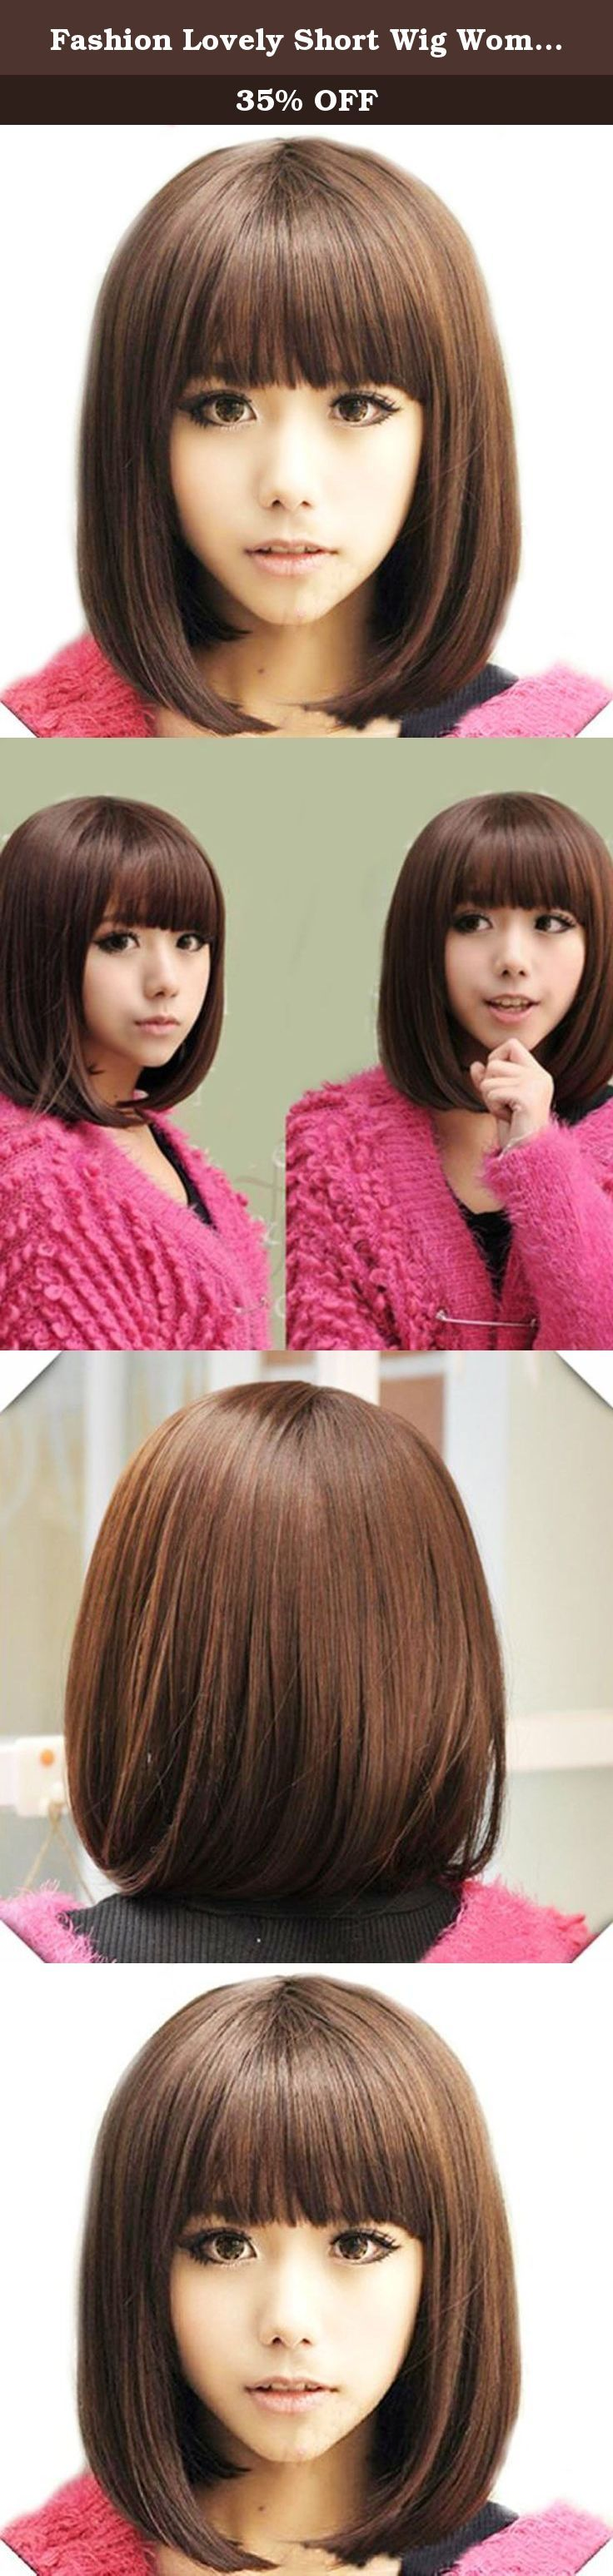 Fashion Lovely Short Wig Women Fringe Straight Full Bobo Hair Heat ResistantLight Brown. 100% brand new and high quality. Specification: Material: 100...